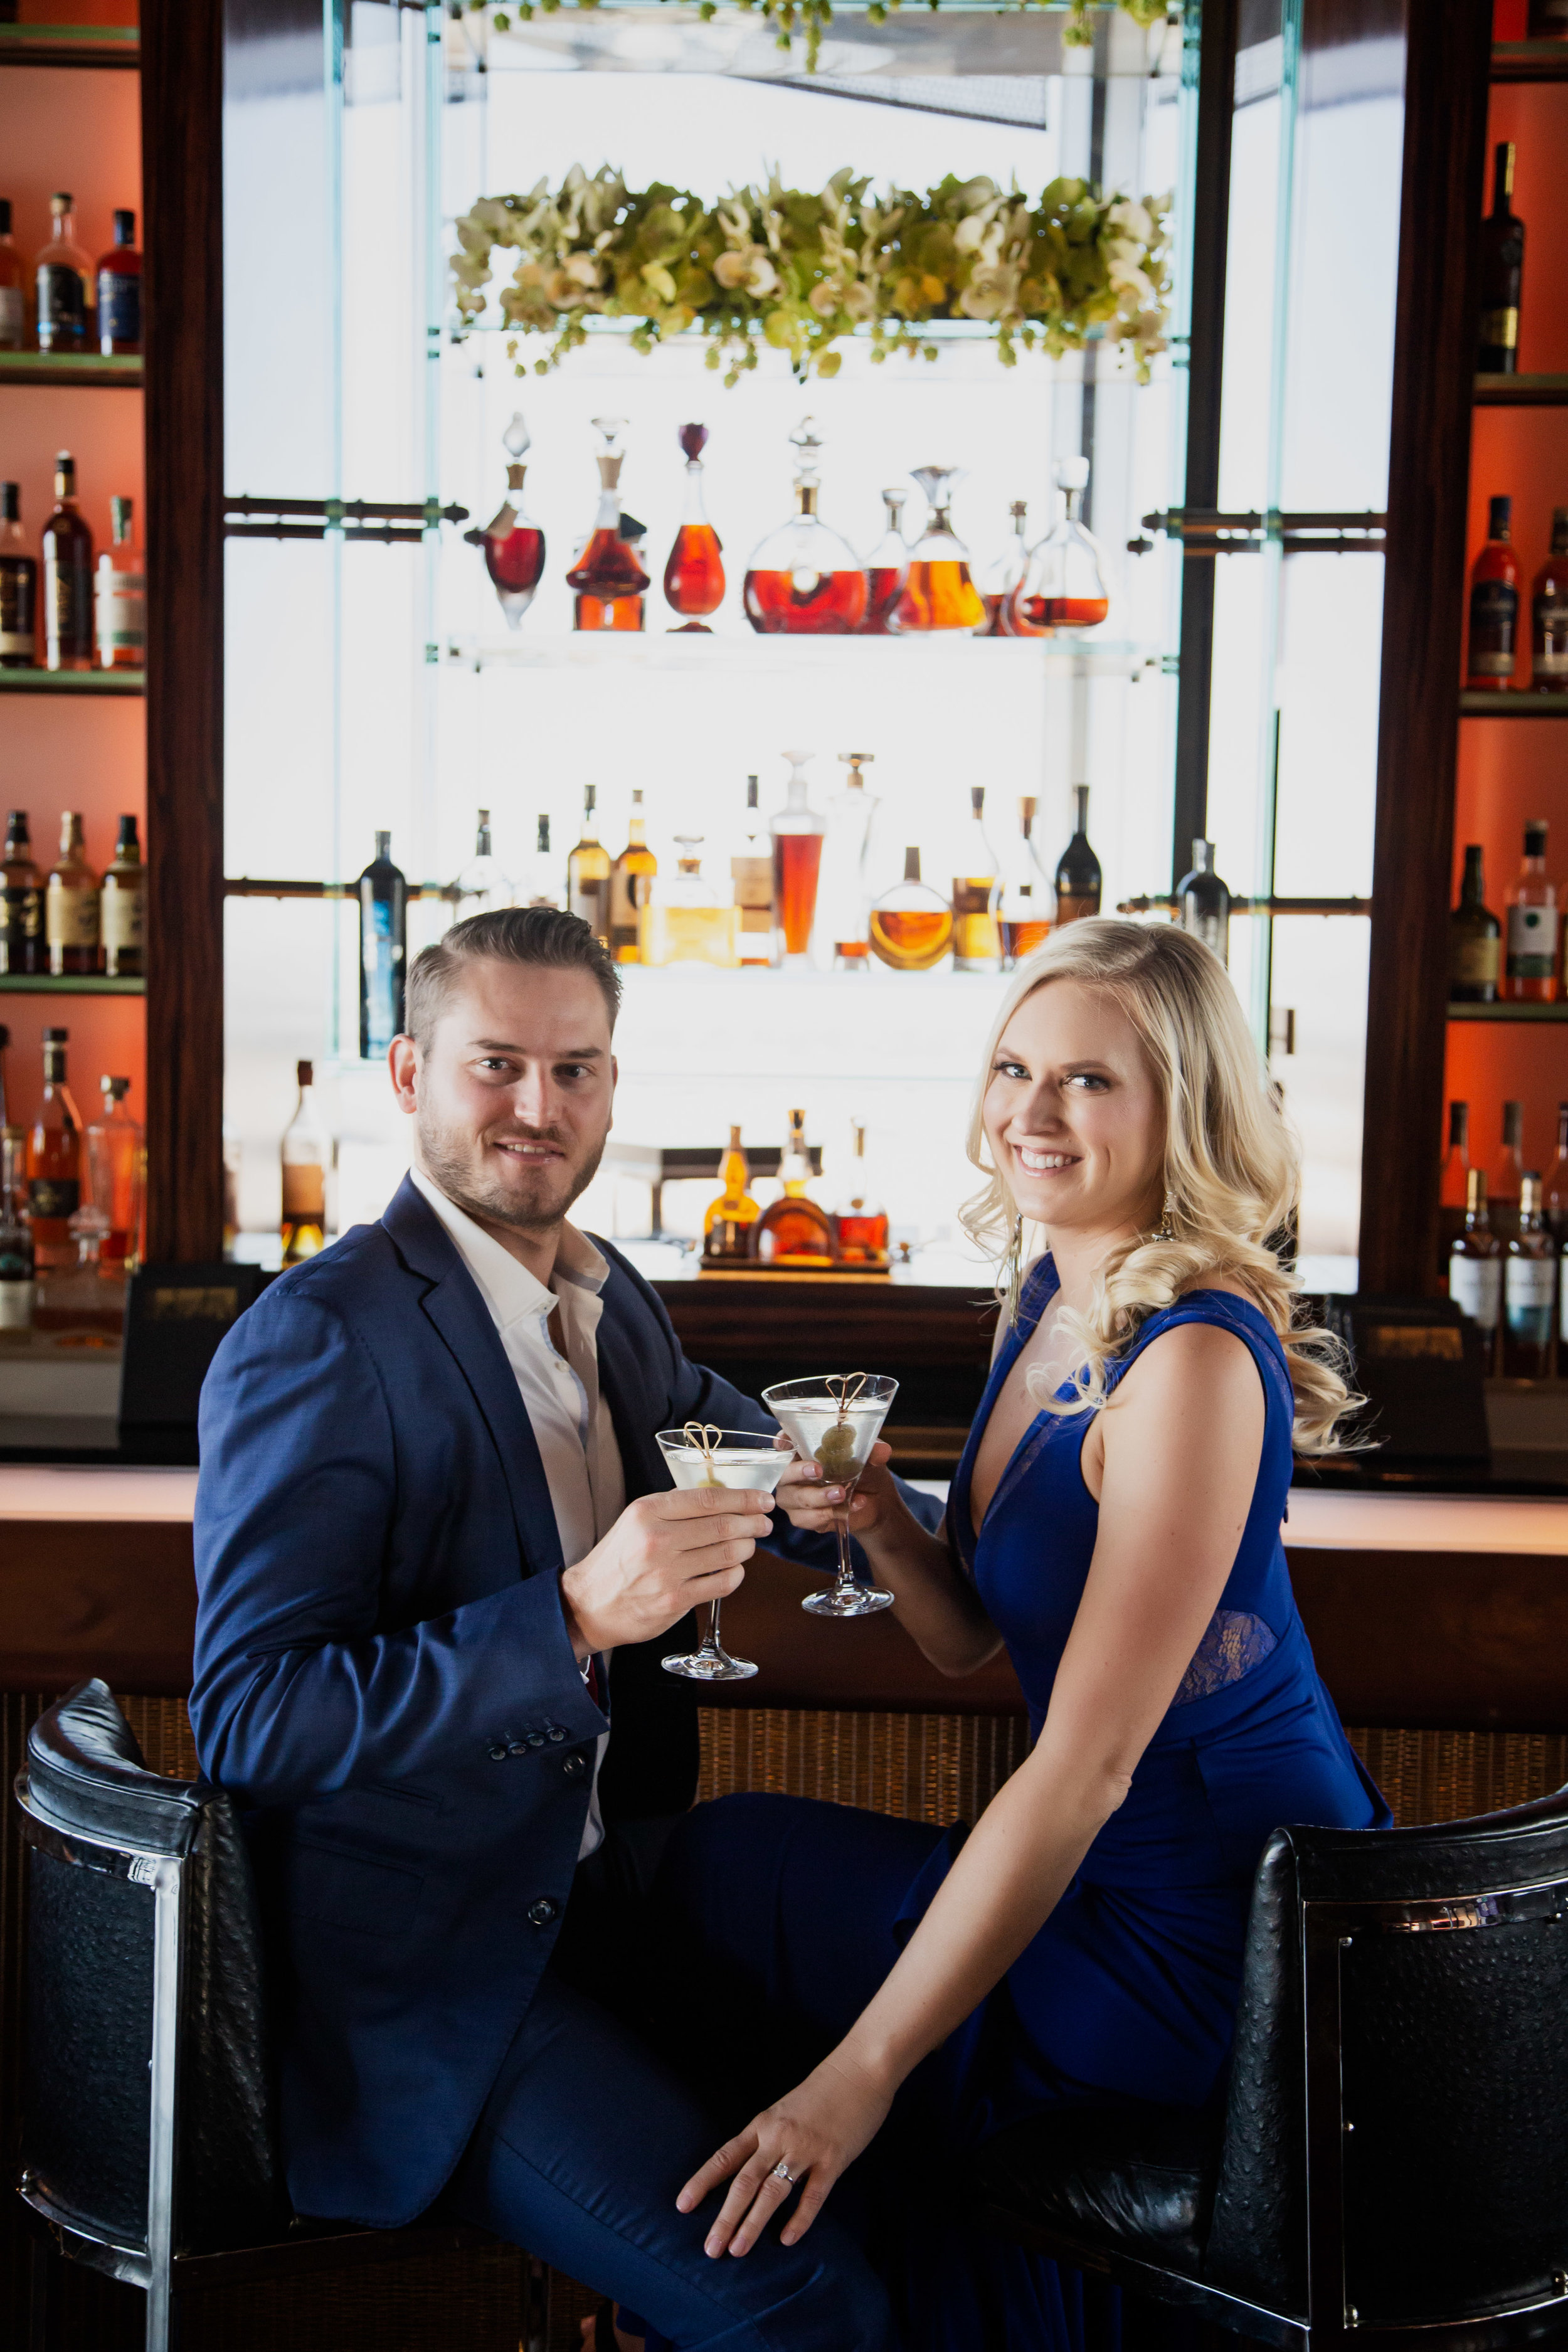 Bride and groom in blue for engagement photos taken in bar at Waldorf Astoria. www.andreaeppolitoevents.com